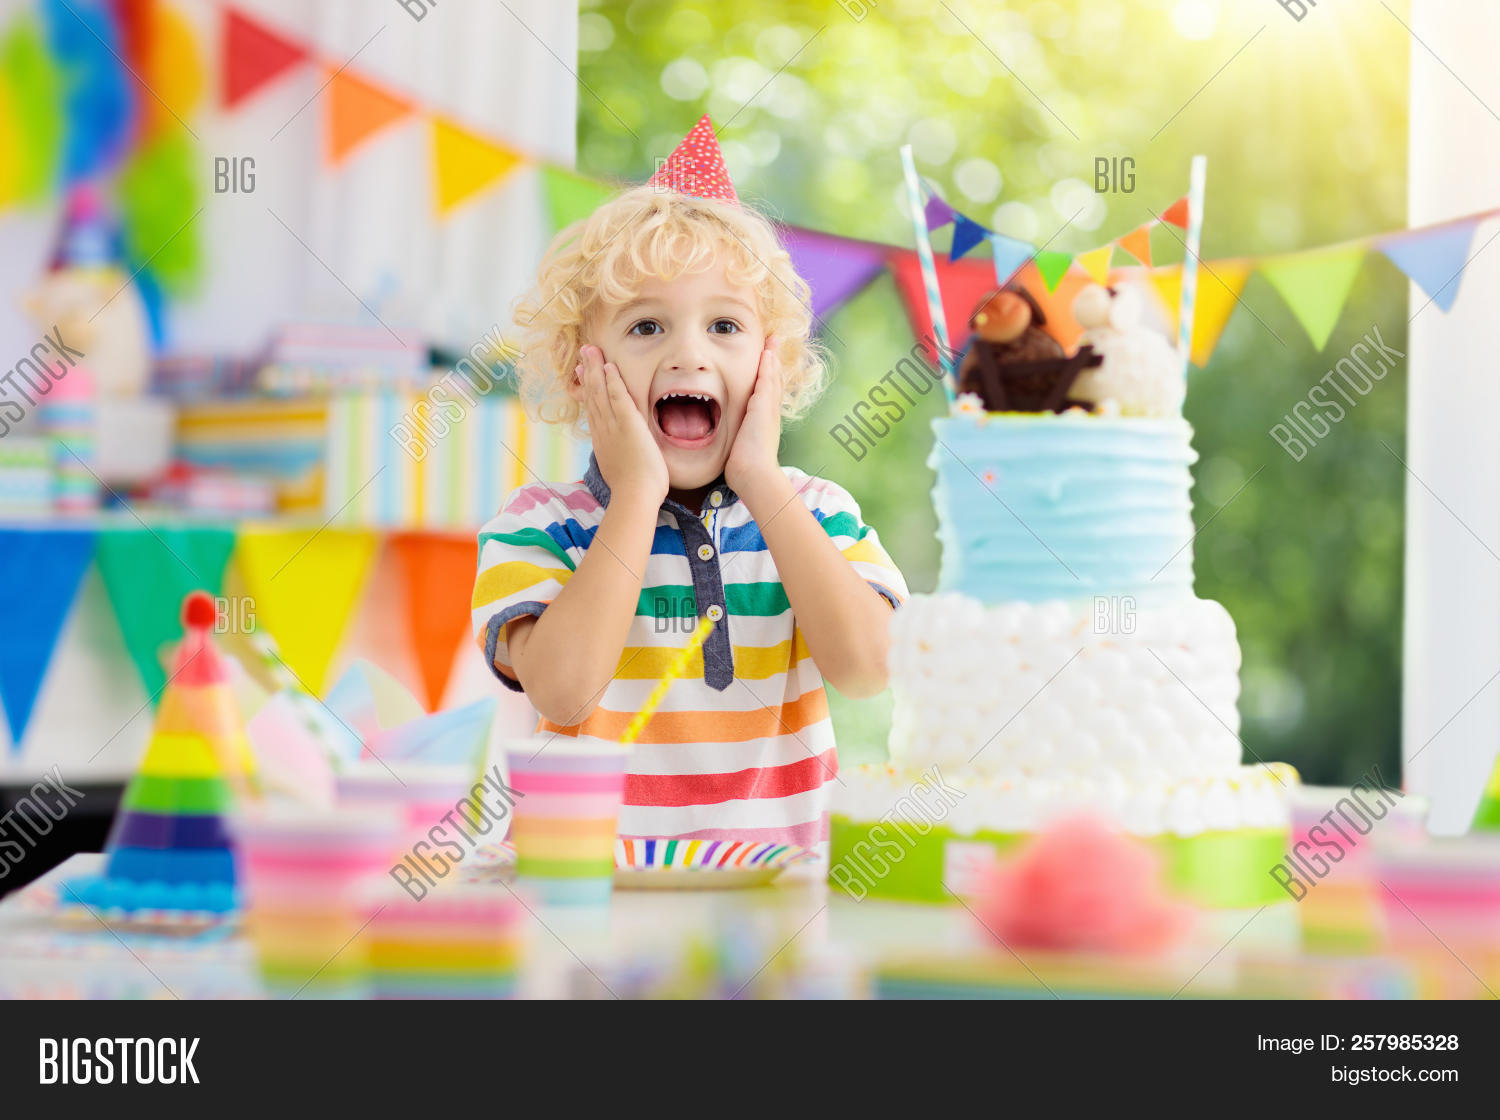 Little Kid Birthday Party Kids Birthday Party Image Photo Free Trial Bigstock